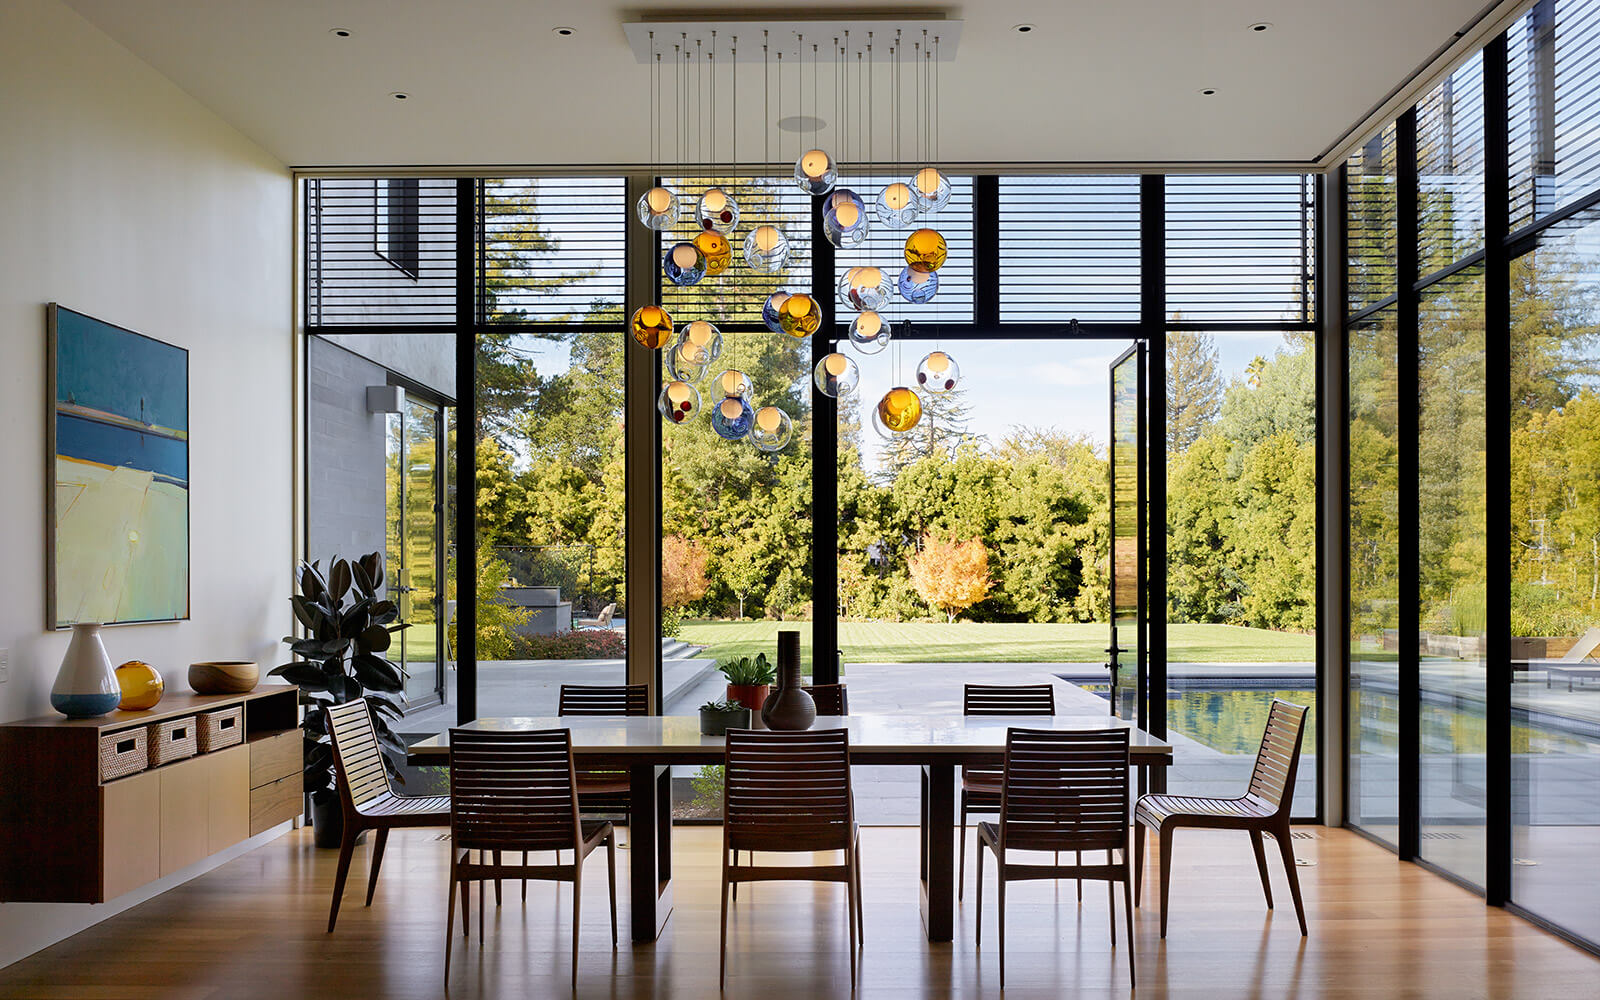 studio vara residential hillsborough dining room landscape